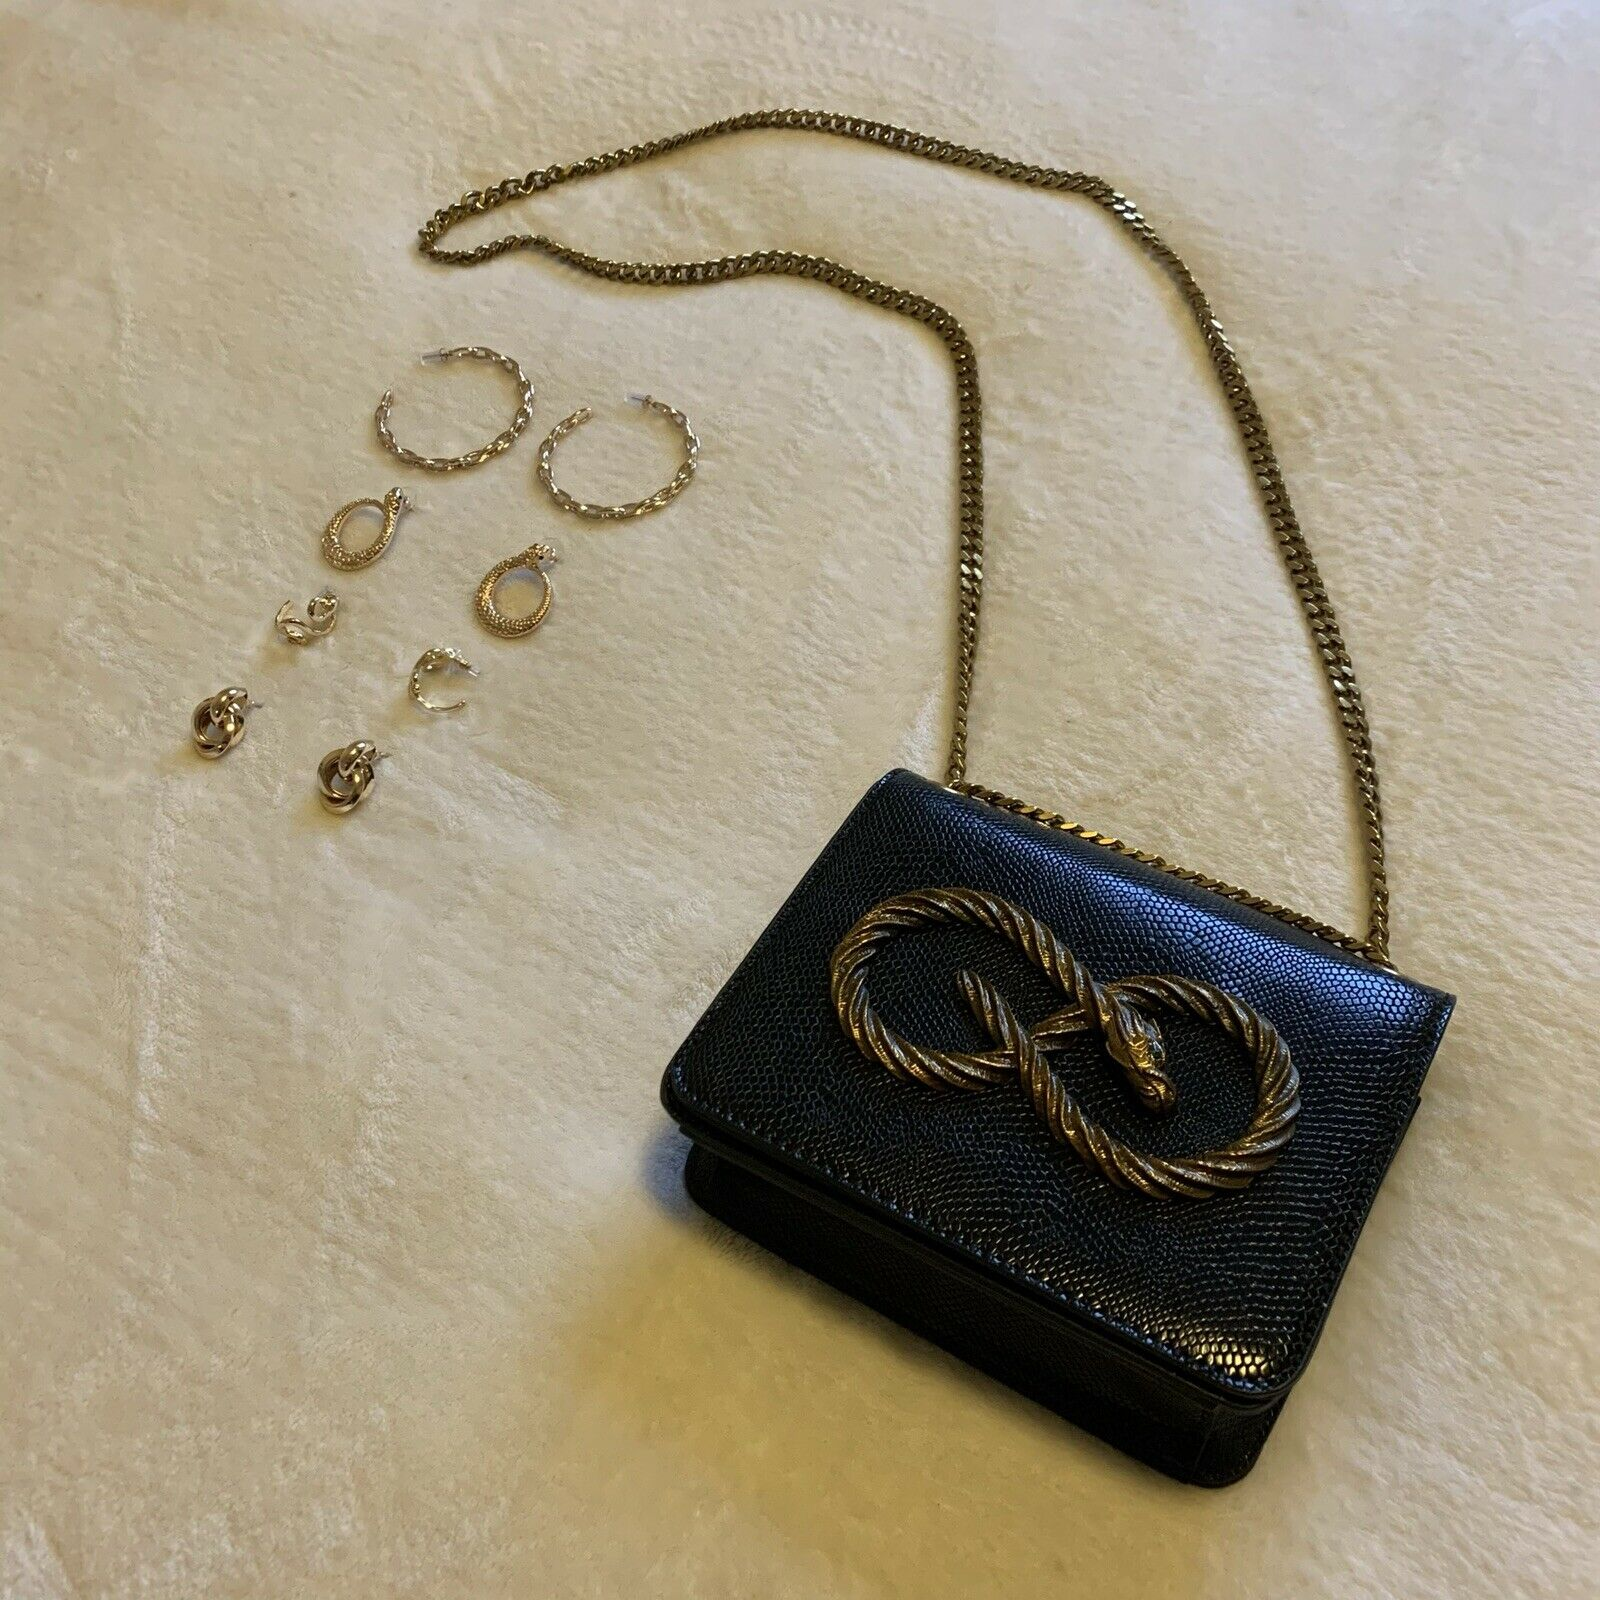 ASOS Snake & Chain Accessories Bundle: Black & Gold Bag & 4x Pairs Of Earrings